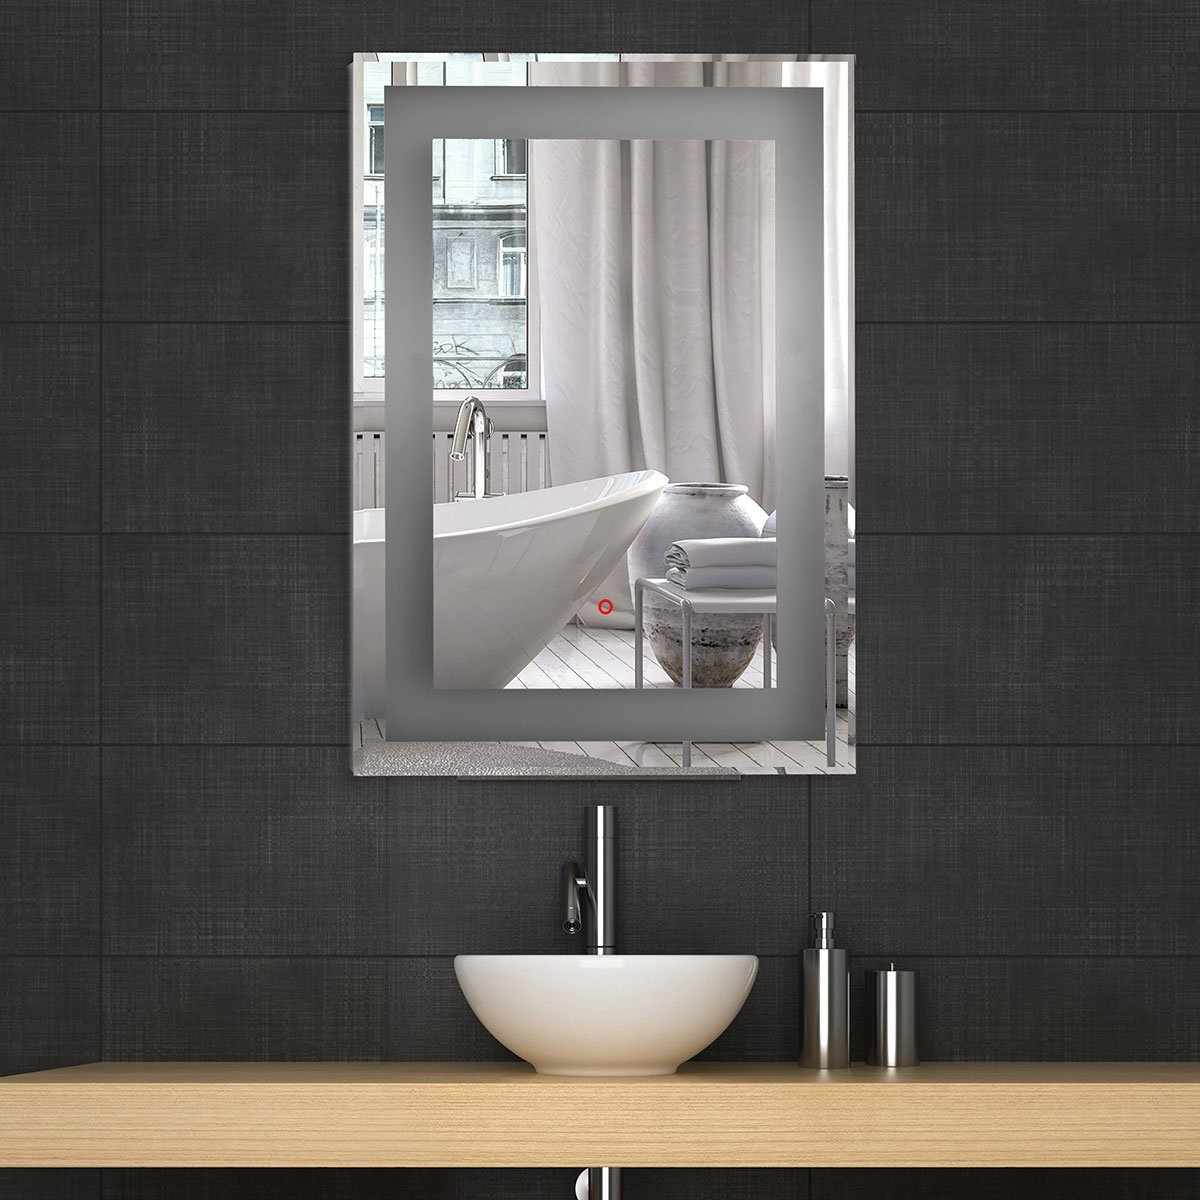 Backlit mirrors for bathrooms u s a together with boffis thirteen to - Amazon Com Decoraport 36 Square Led Bathroom Mirror Illuminated Lighted Vanity Wall Mounted Mirror With Touch Button A Ck168 E Home Kitchen